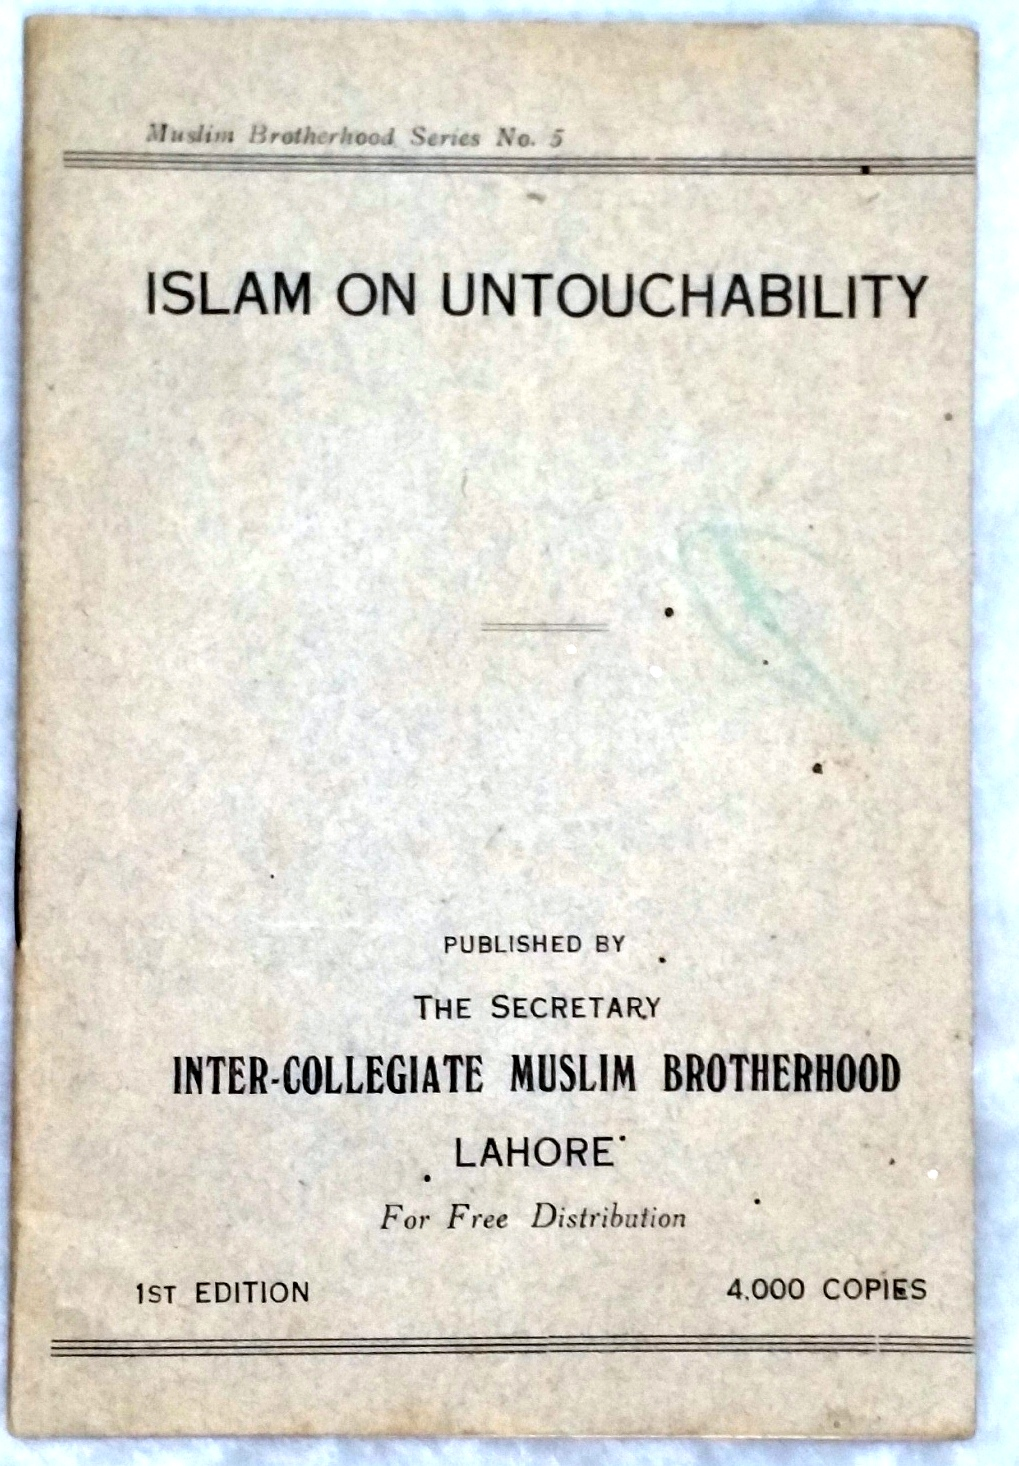 Image for Islam on Untouchability (Muslim Brotherhood Series No. 5)